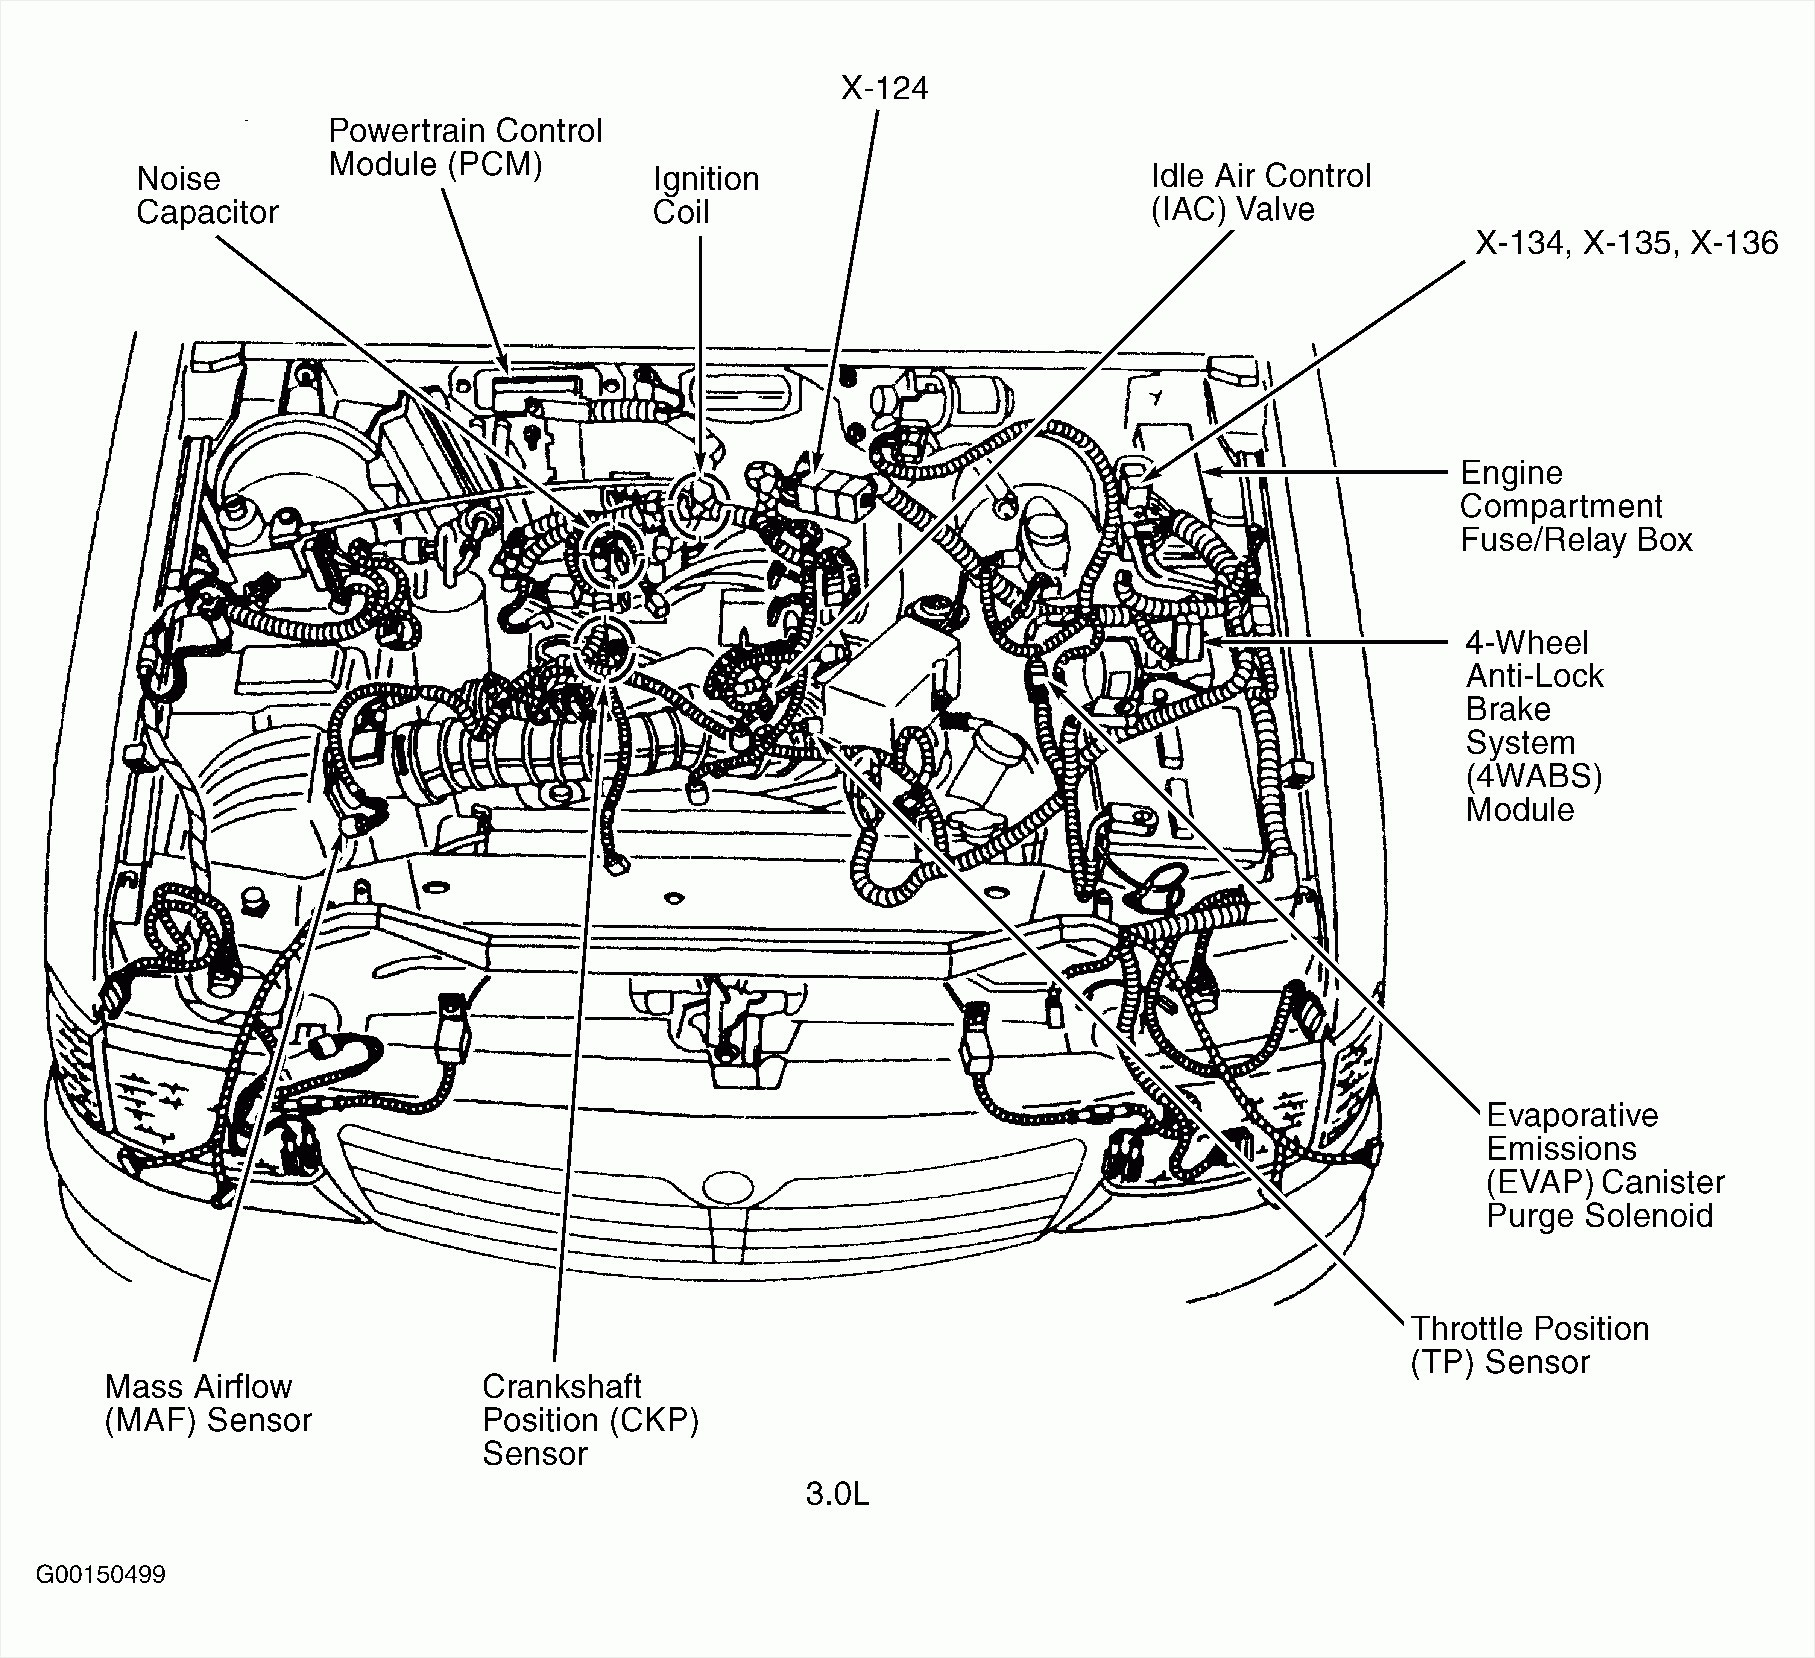 Chrysler 3 8 V6 Engine Diagram Data Wiring Today Gm 700r4 Transmission Temp Sensor Simple 2004 Sebring